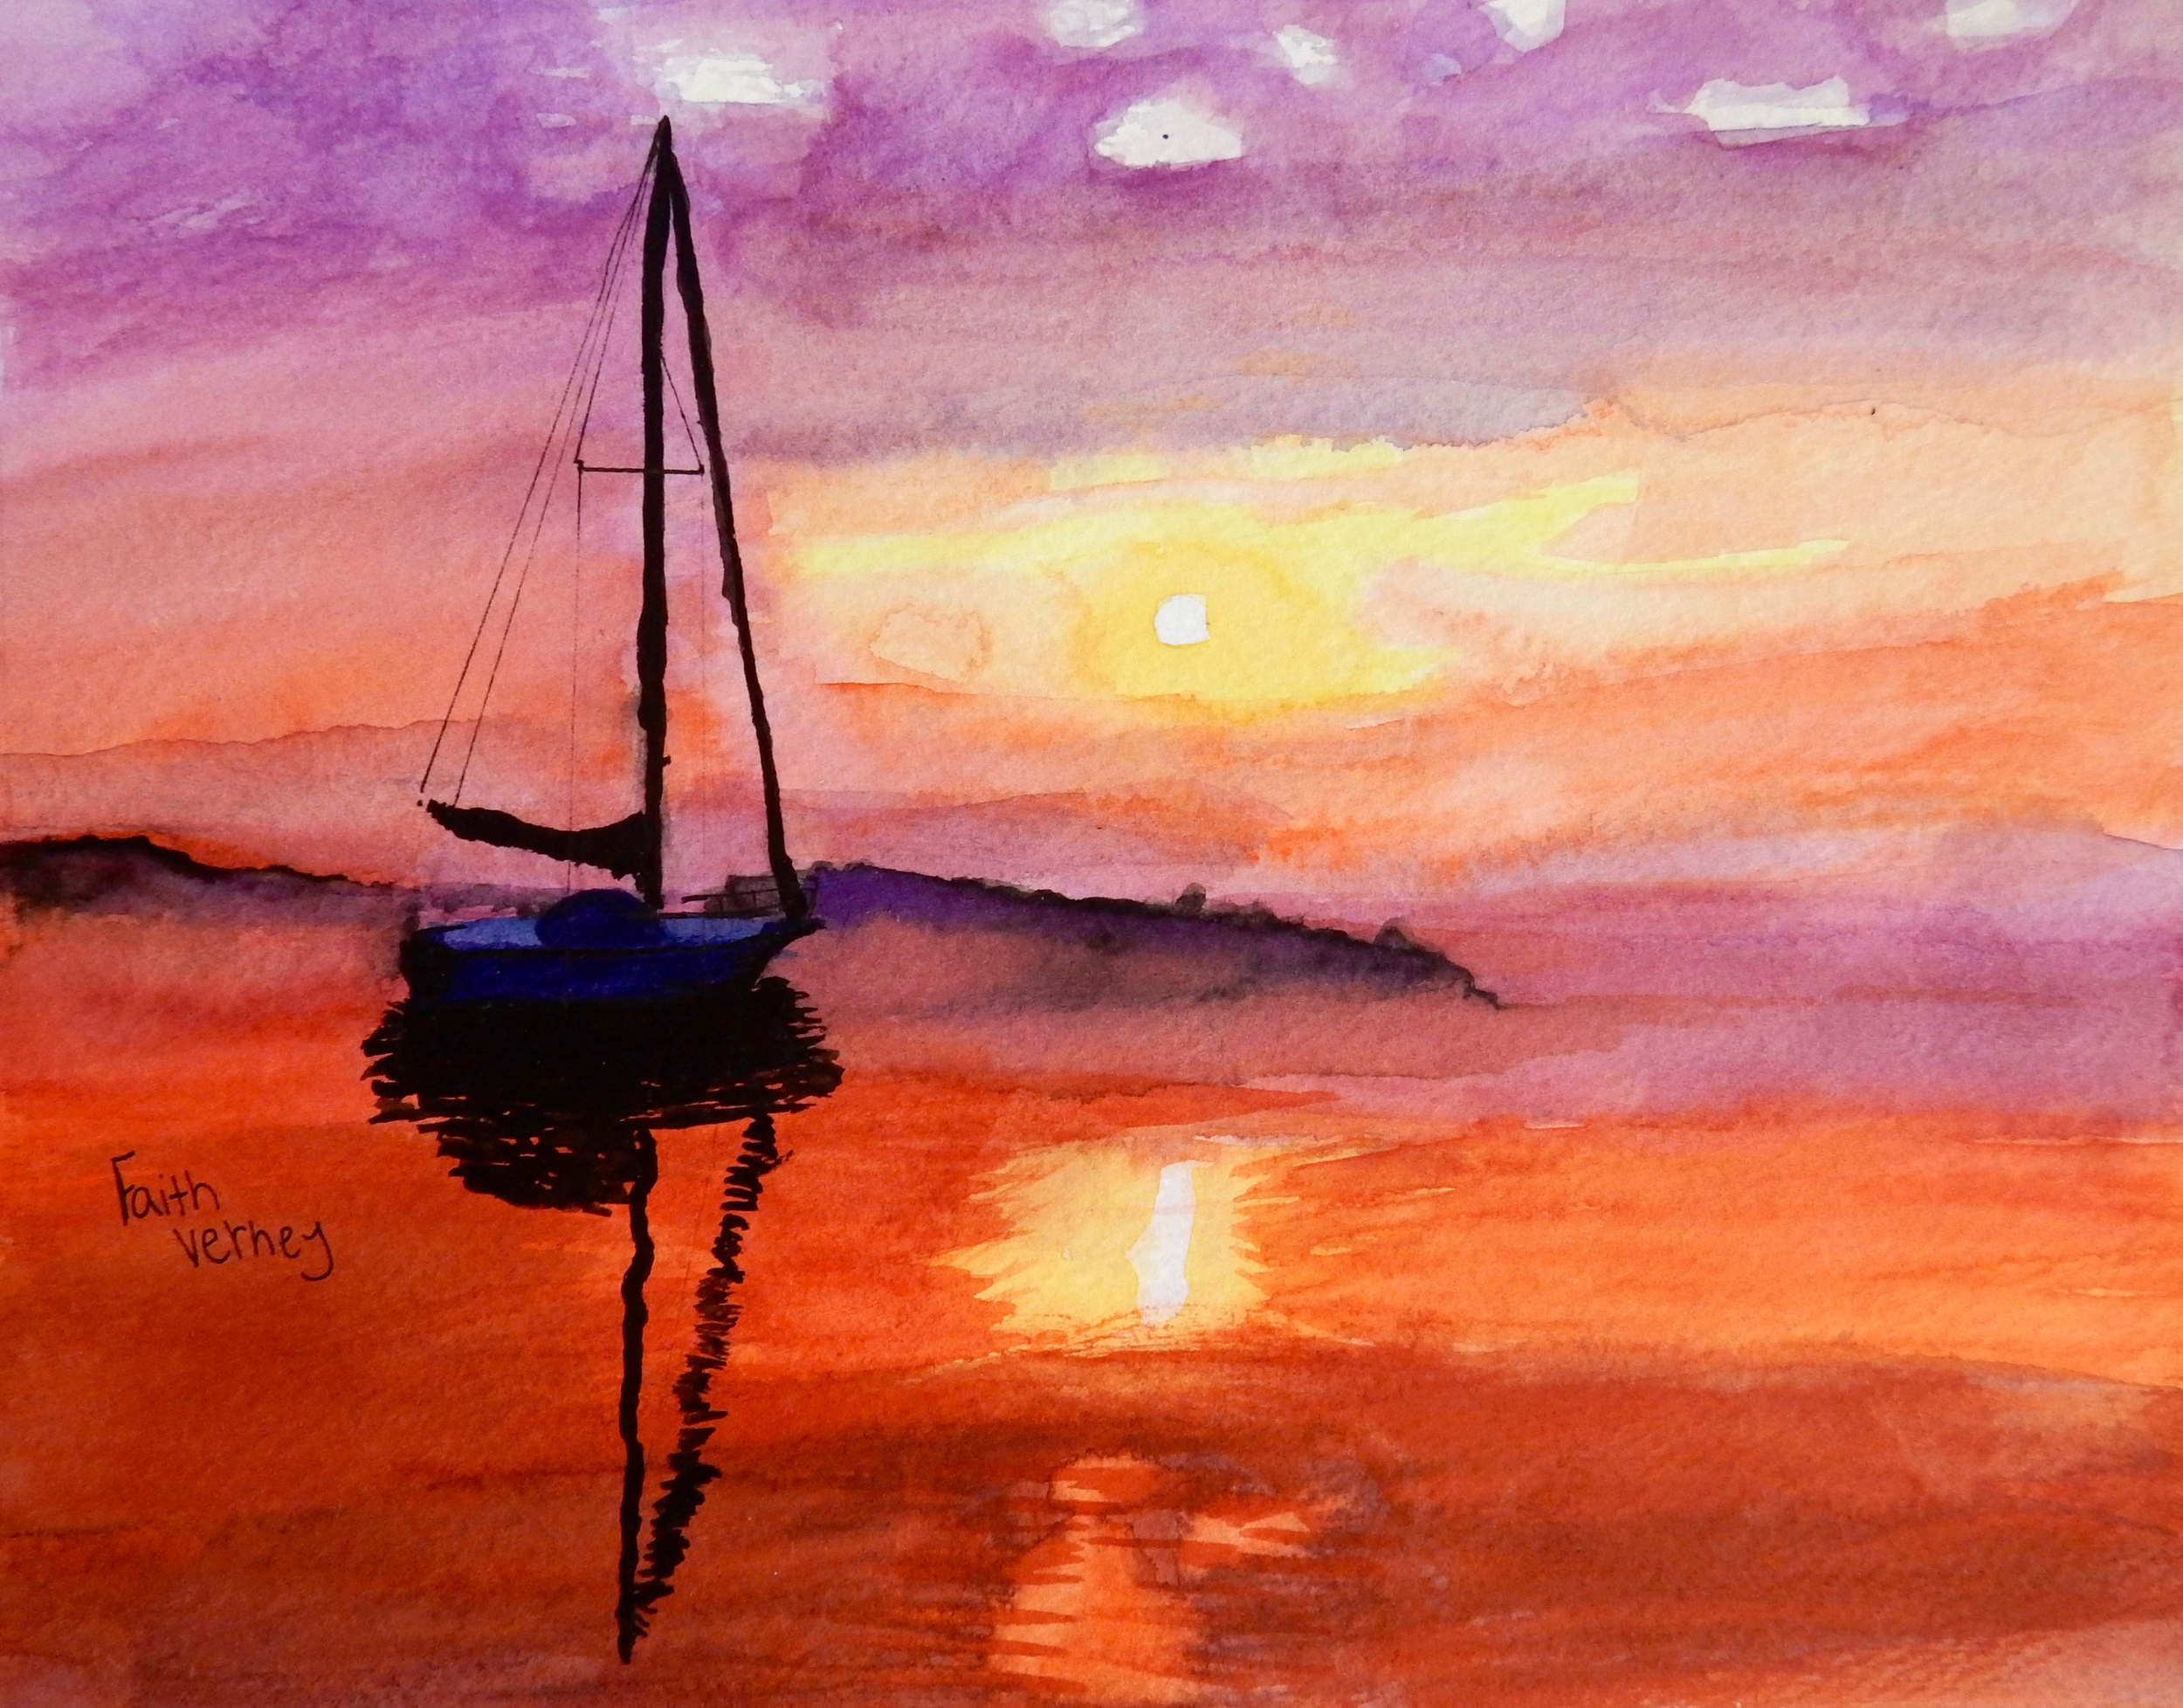 Faith Verney.15yrs.watercolor.Sailing at Sunset